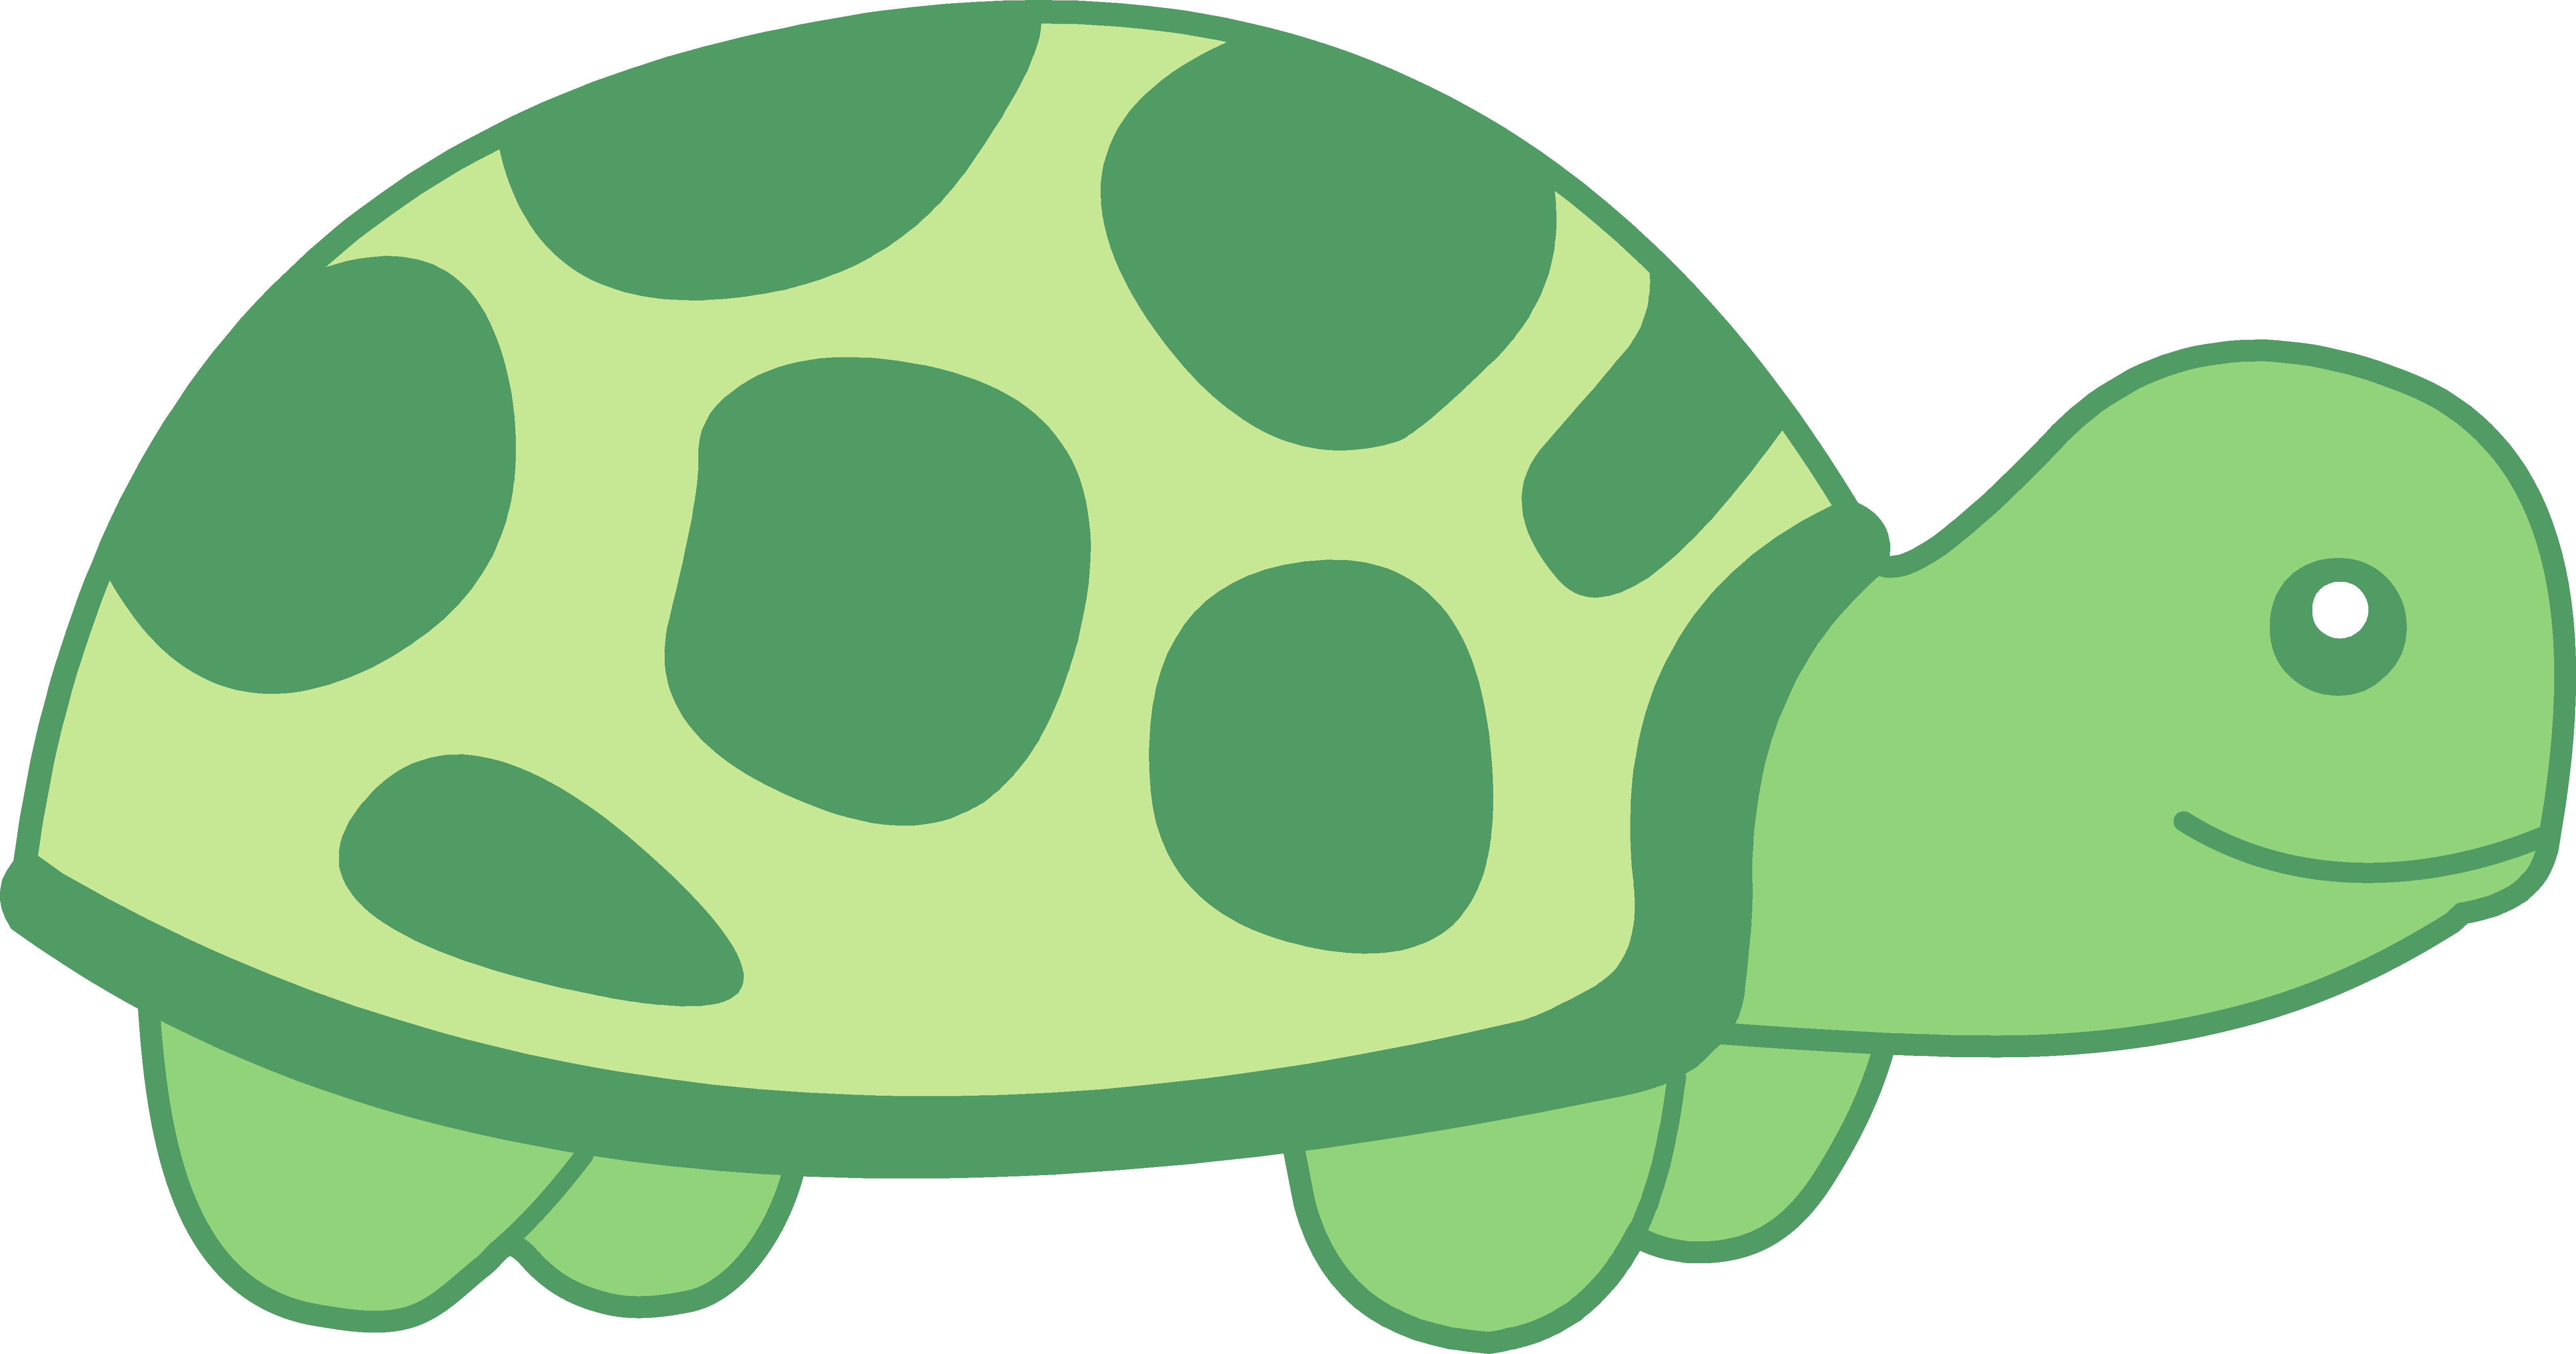 Turtles clipart design. Little green turtle free